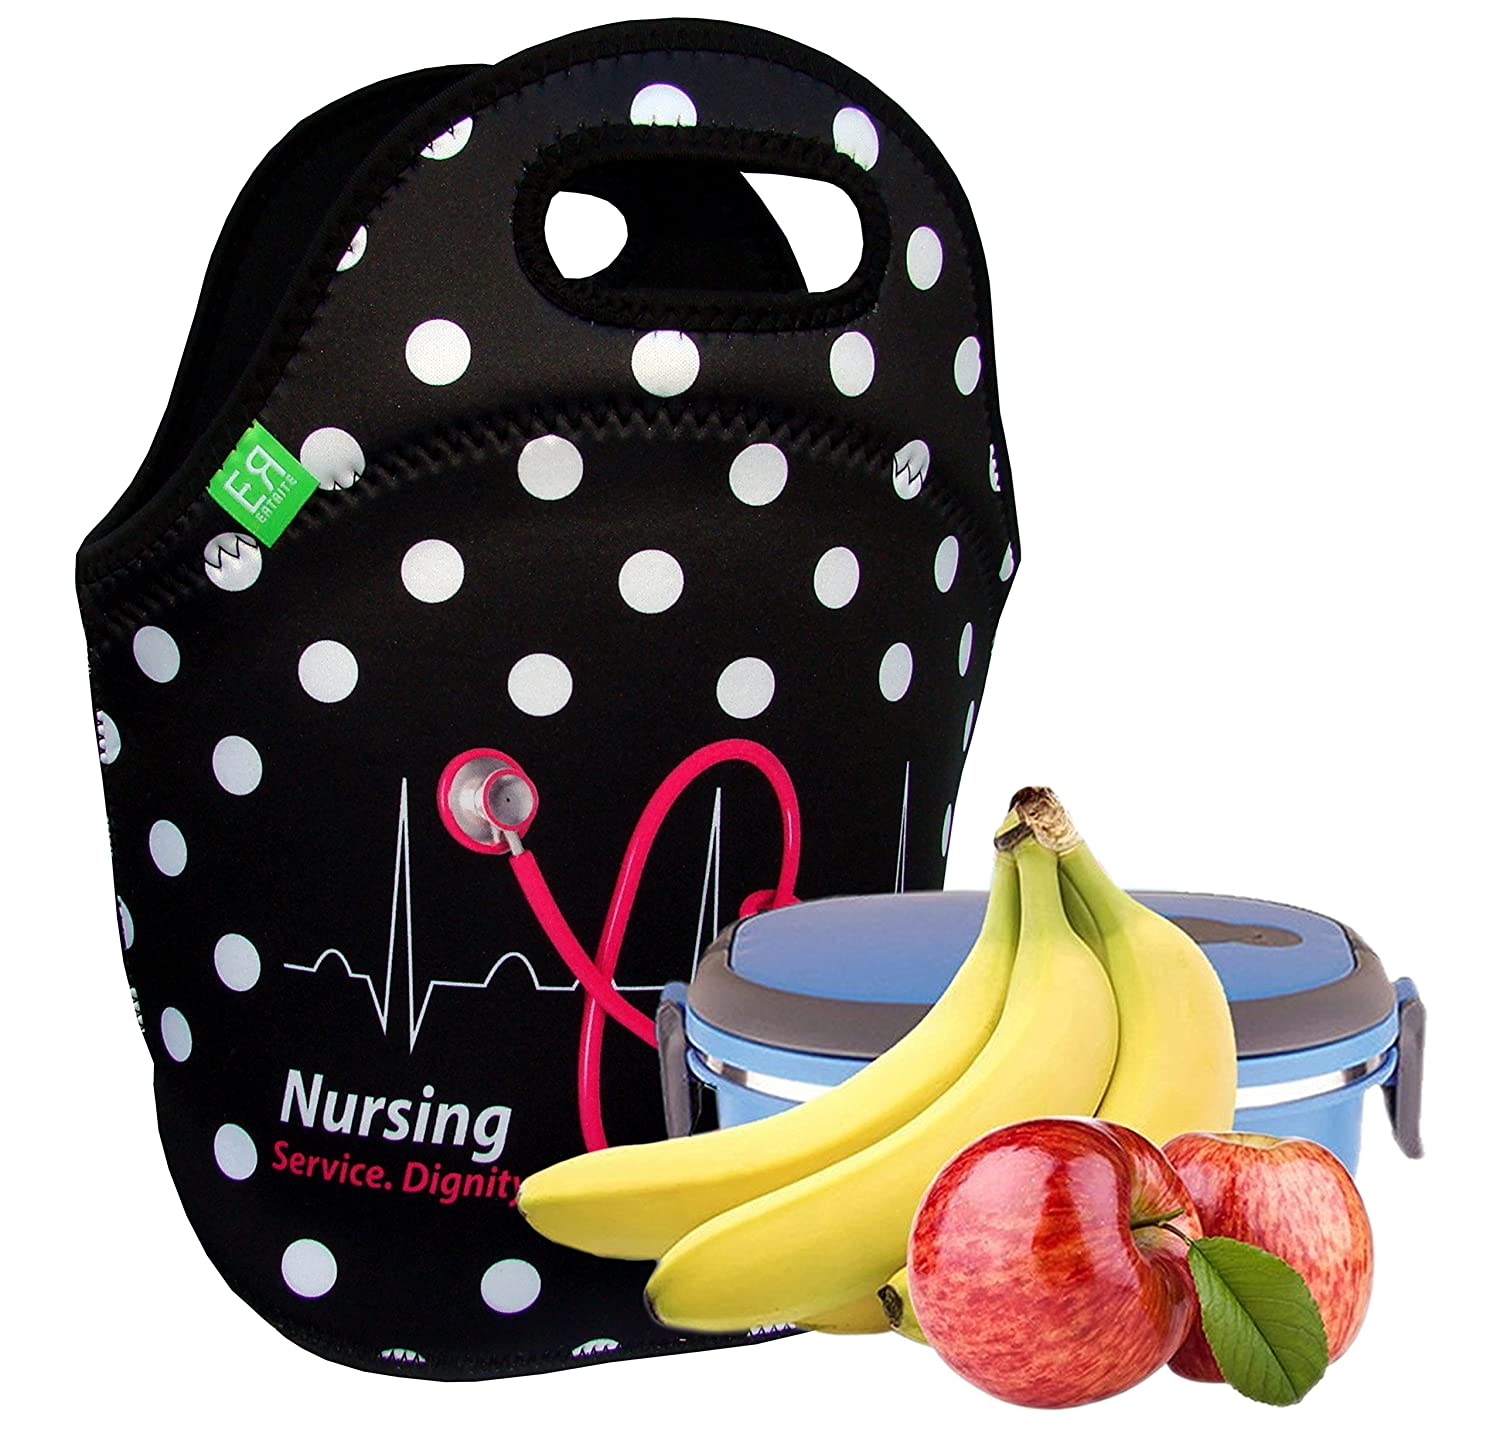 Nurses Insulated Lunch Tote Bag X-large, X-Thicker Insulation Stylish Luxury Nurse Gift Idea by EatRite (Black) ER-100A